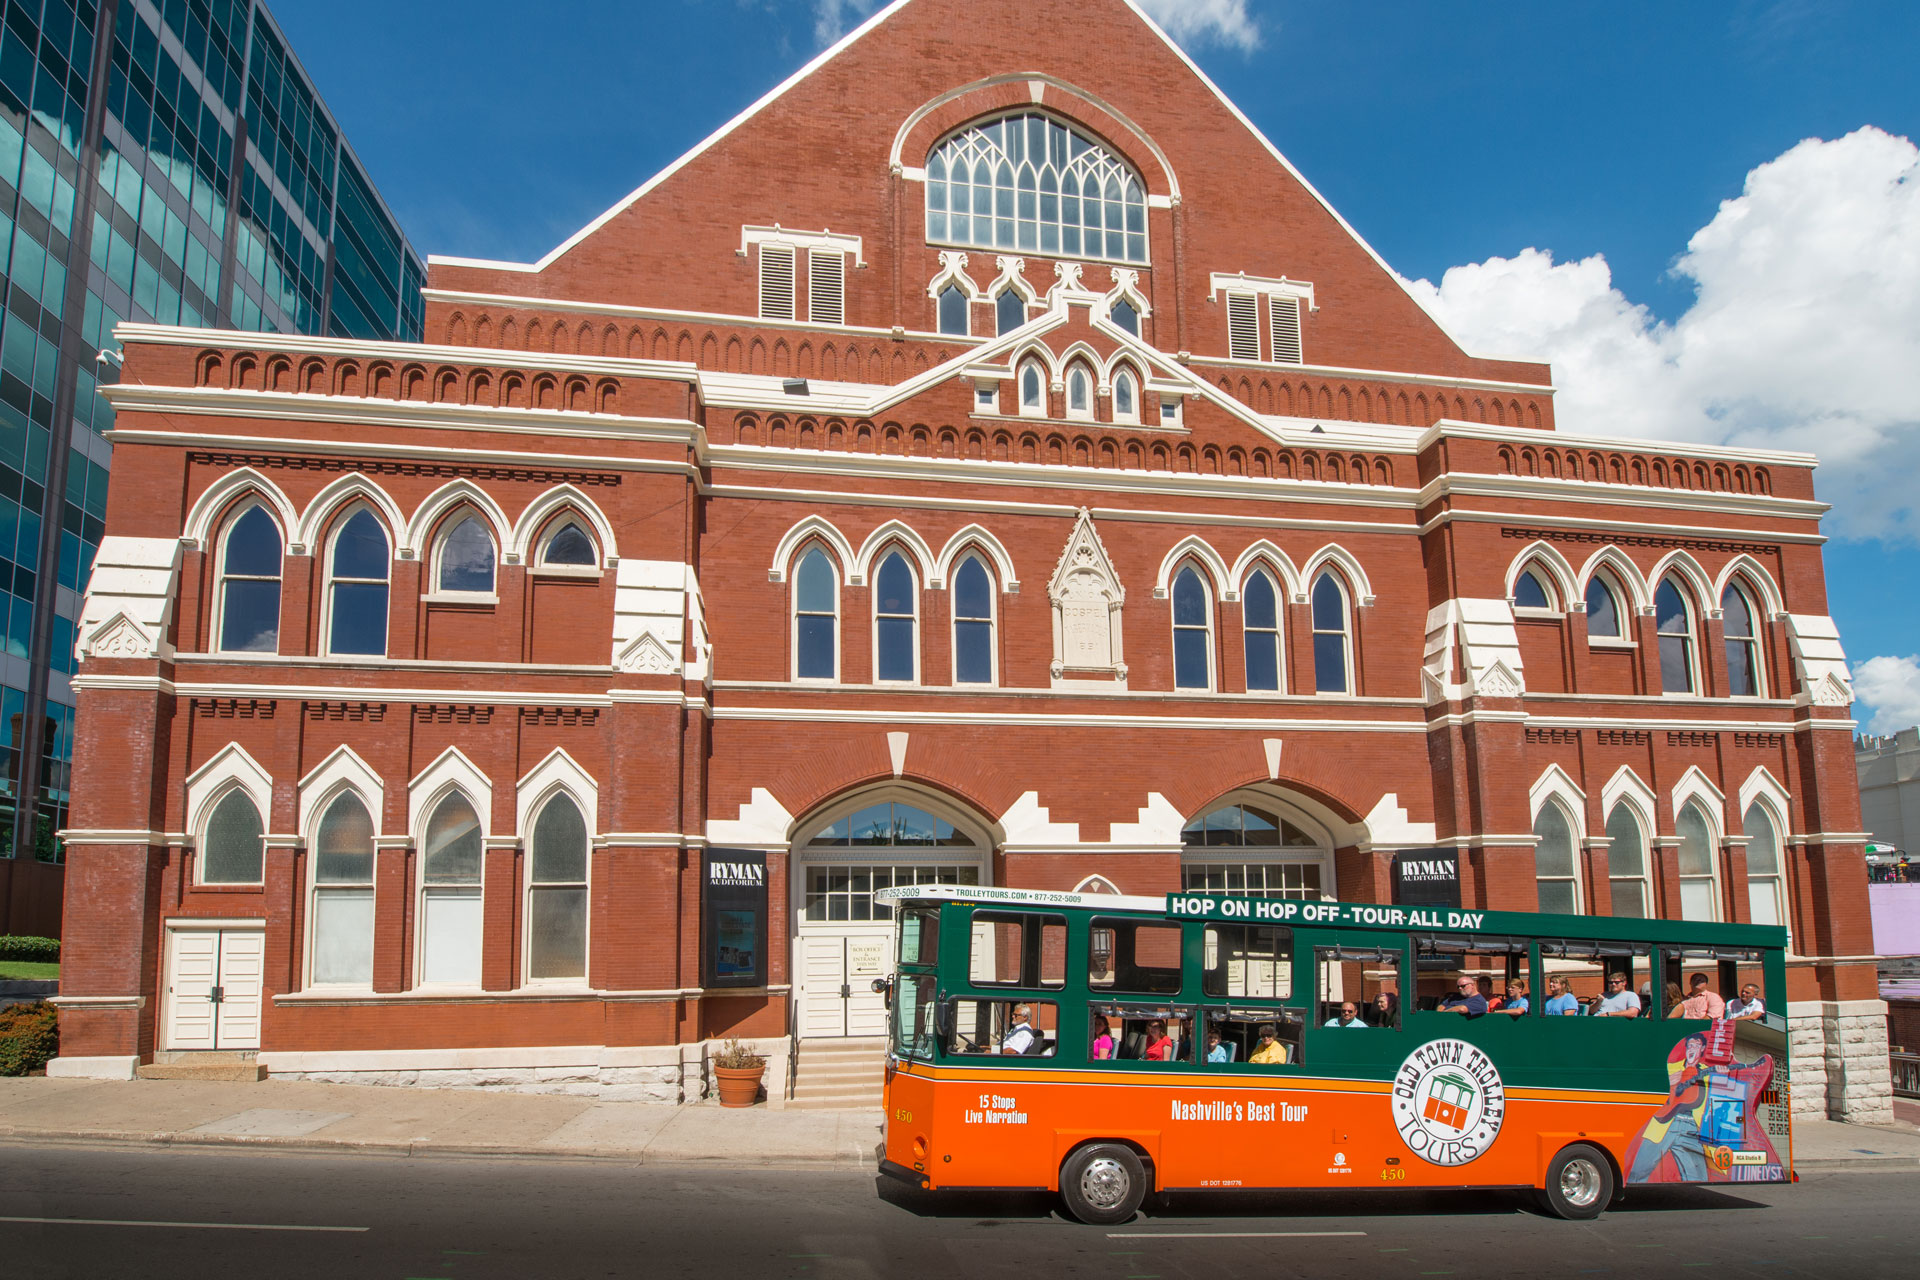 Old Town Trolley Tour of Nashville